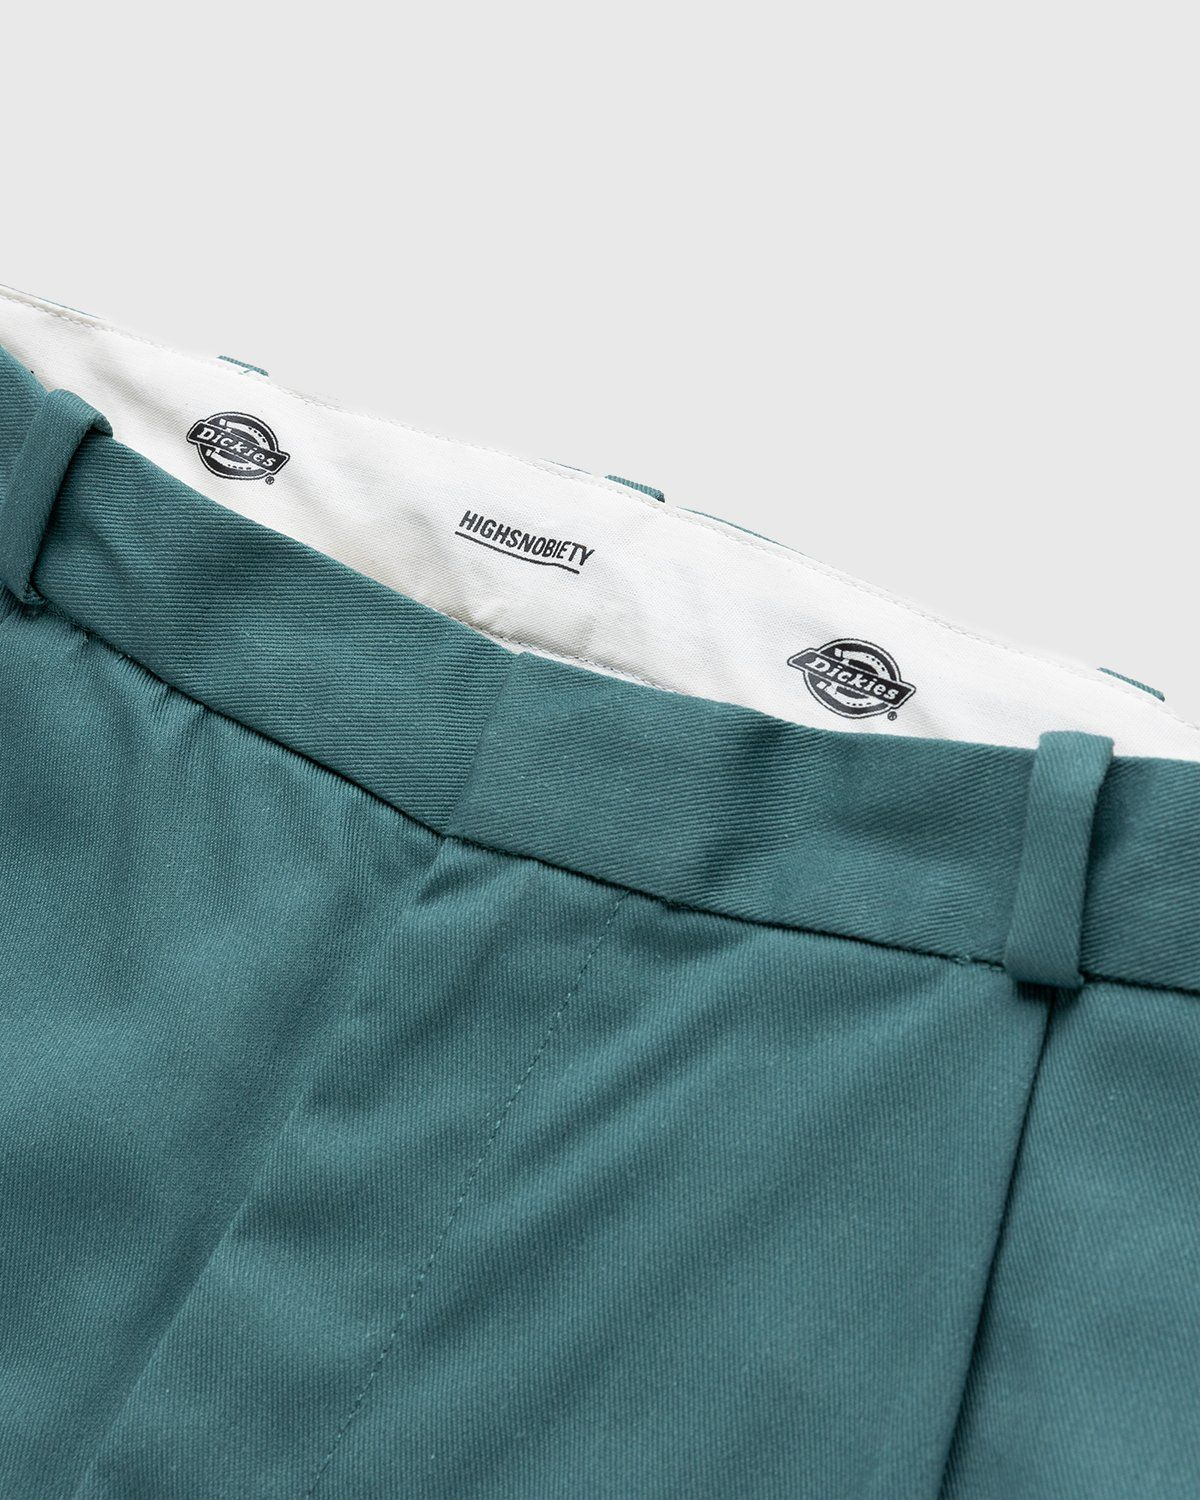 Highsnobiety x Dickies – Pleated Work Pants Lincoln Green - Image 3